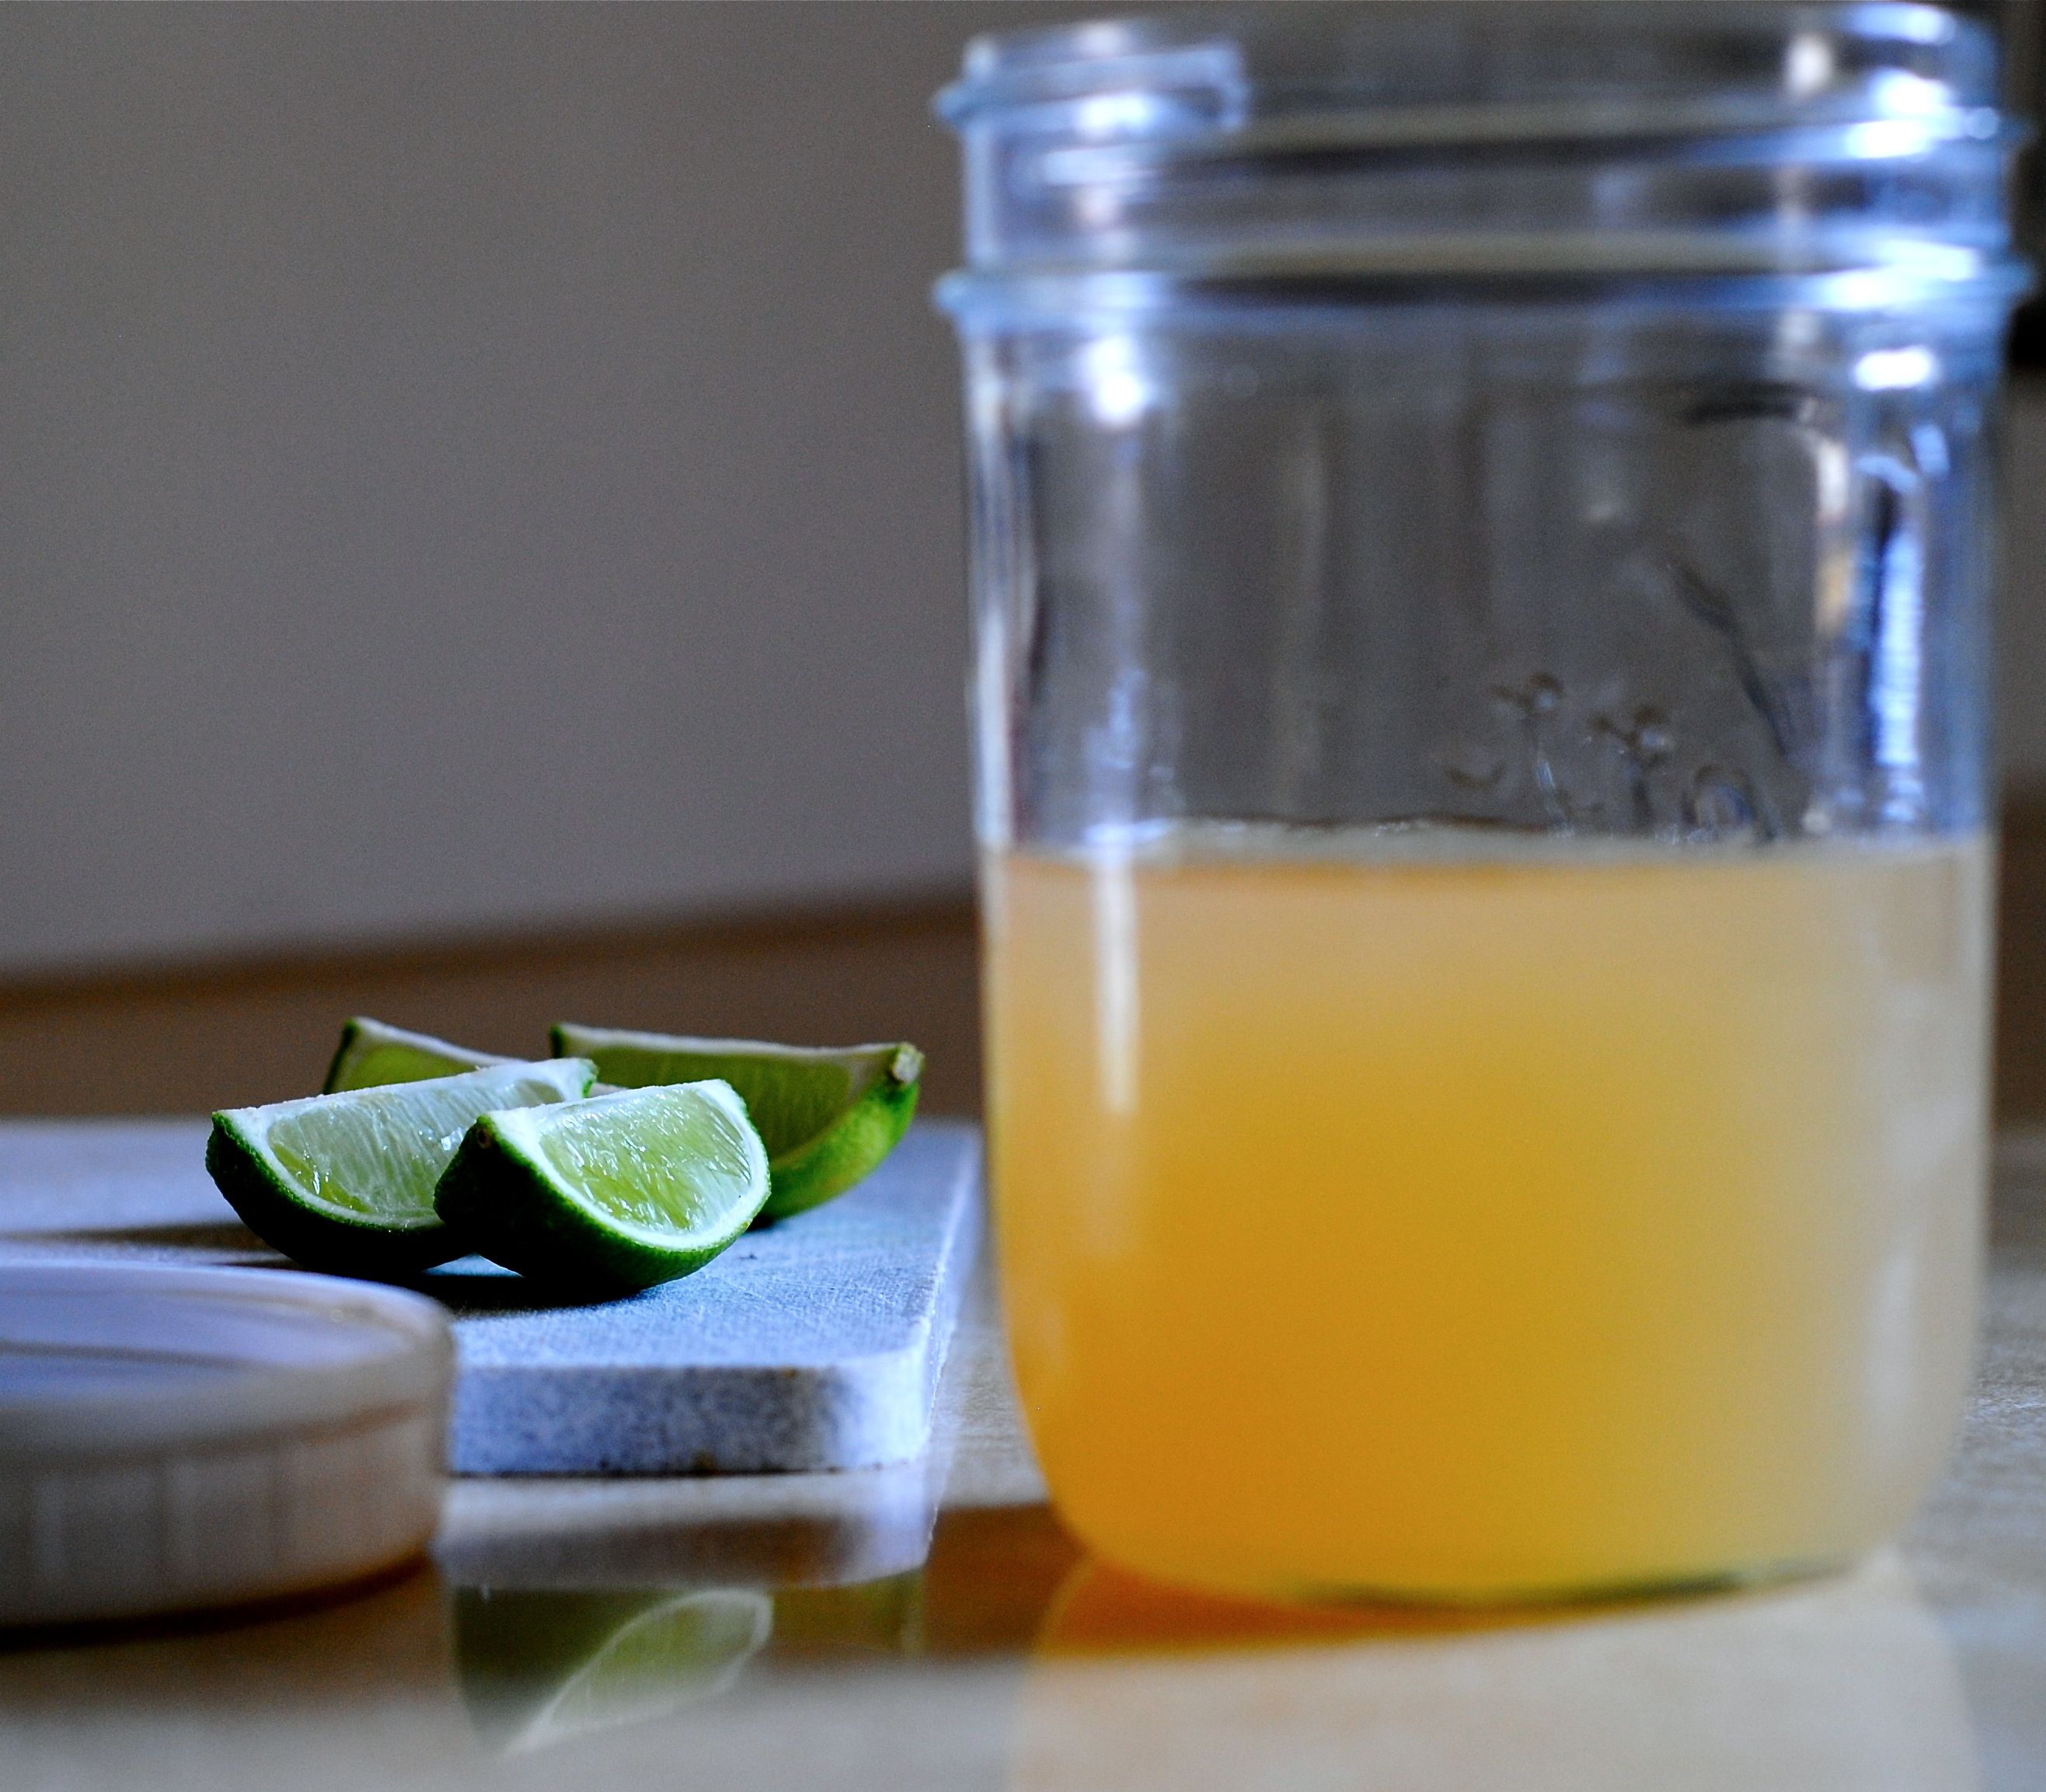 ... Homemade Sweet & Sour Mix for a Midori Sour » sweet and sour mix 1